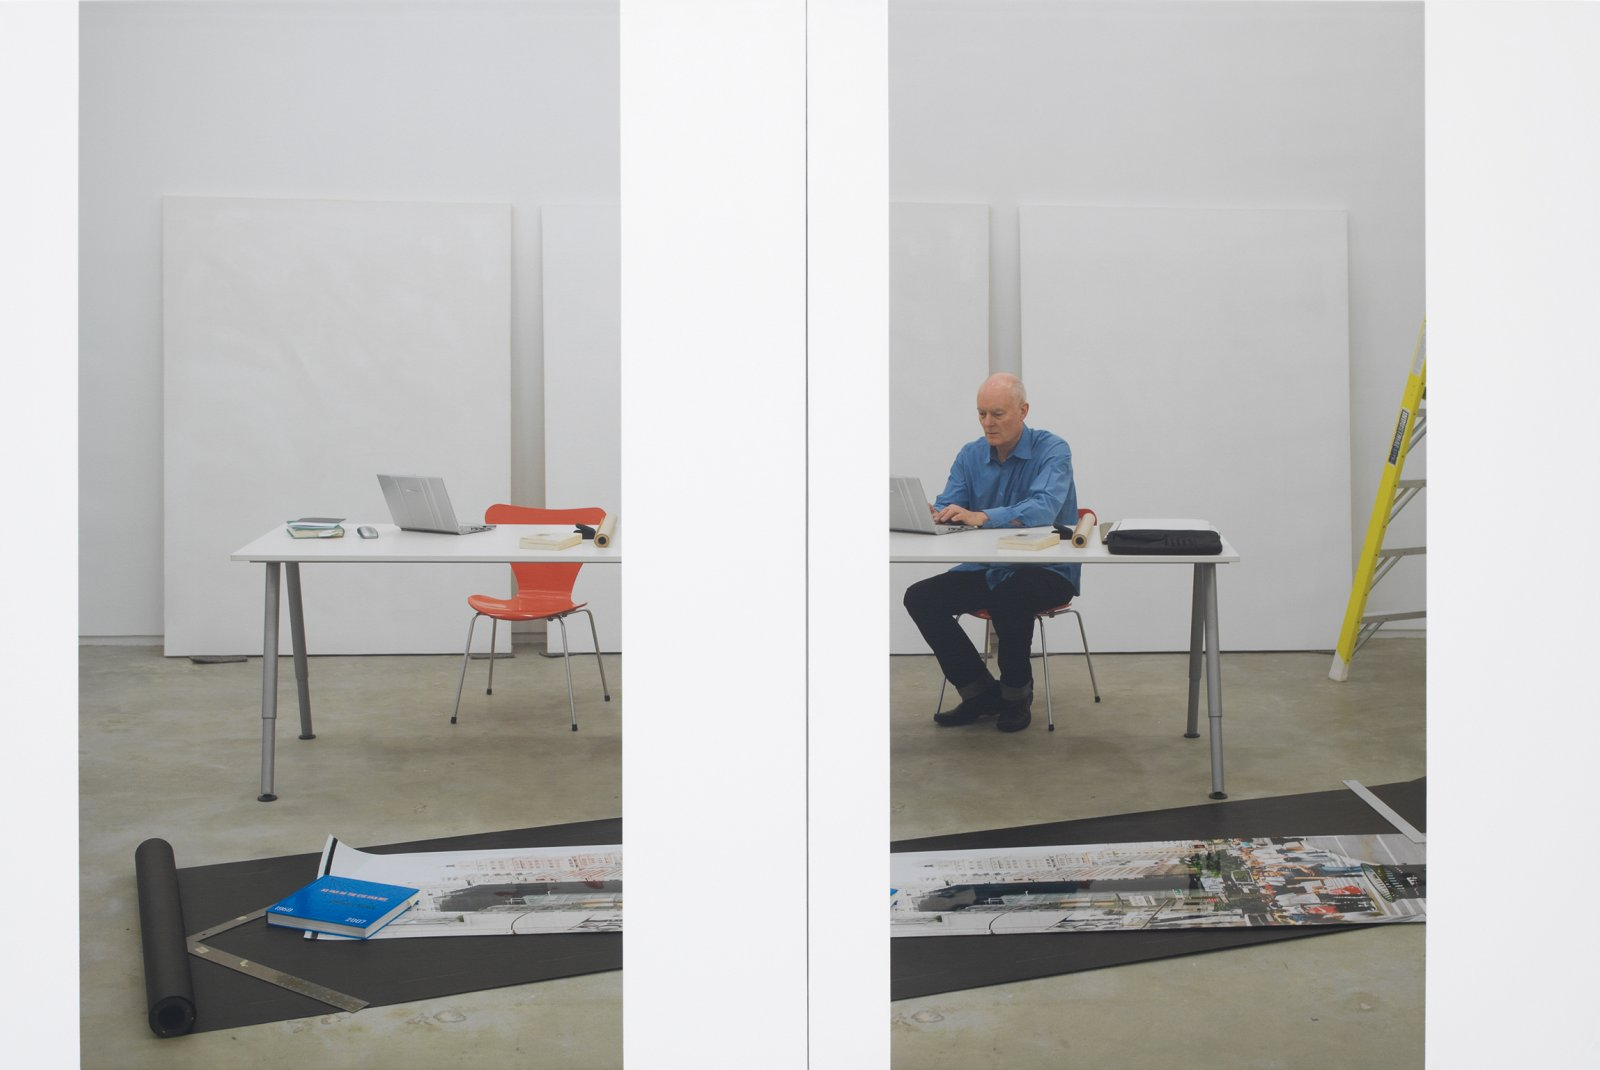 Ian Wallace, At Work 2008, 2008, photolaminate with acrylic on canvas, 80 x 120 in. (203 x 305 cm). Installation view, A Literature of Images, Kunsthalle Zürich, 2008 by Ian Wallace